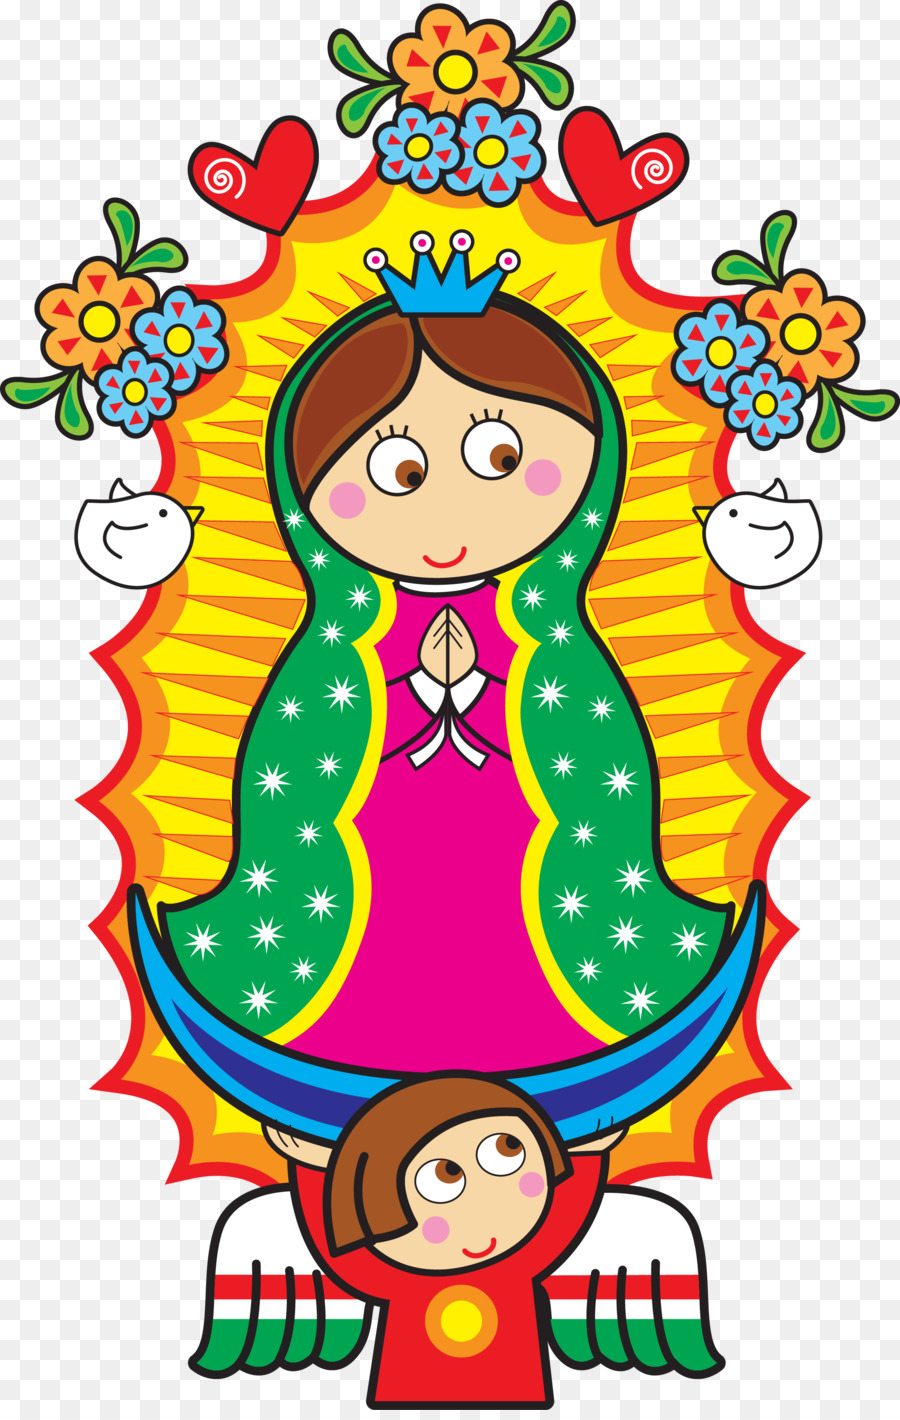 Hand painted two girls reluctantly png image_picture free download  611442444_lovepik.com